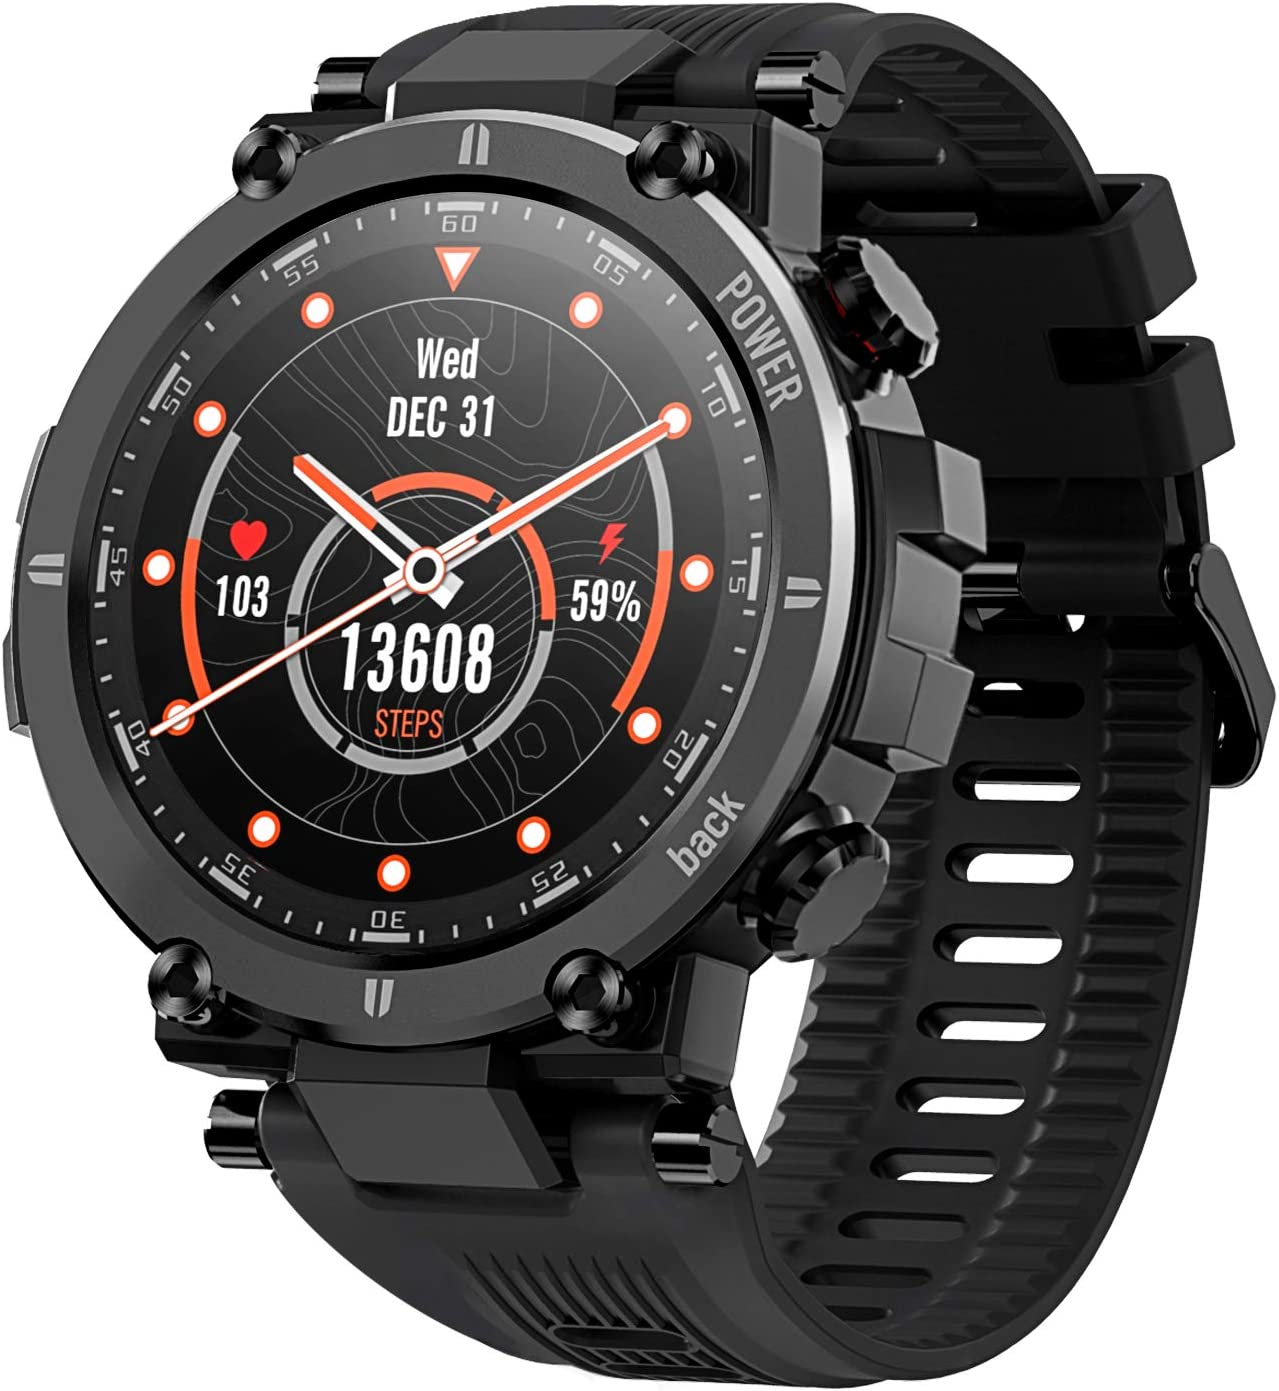 Kospet Raptor Smartwatch Sport Smart Watch Mit Elektronik